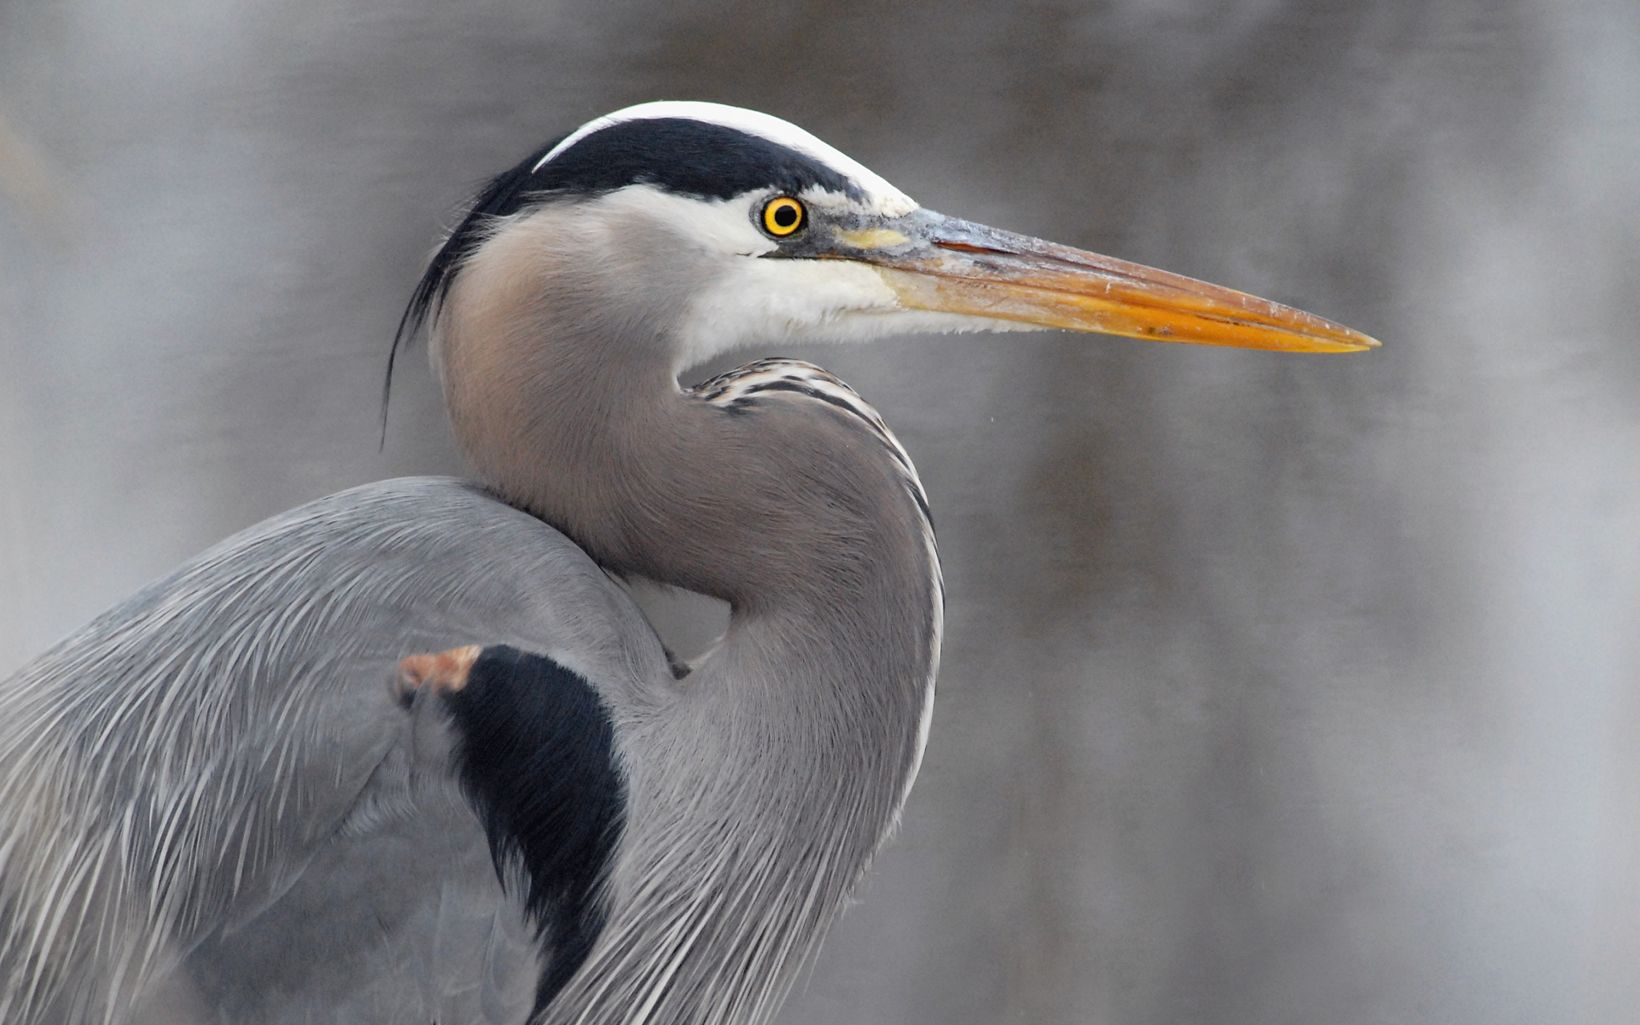 The head of great blue heron taken from the side